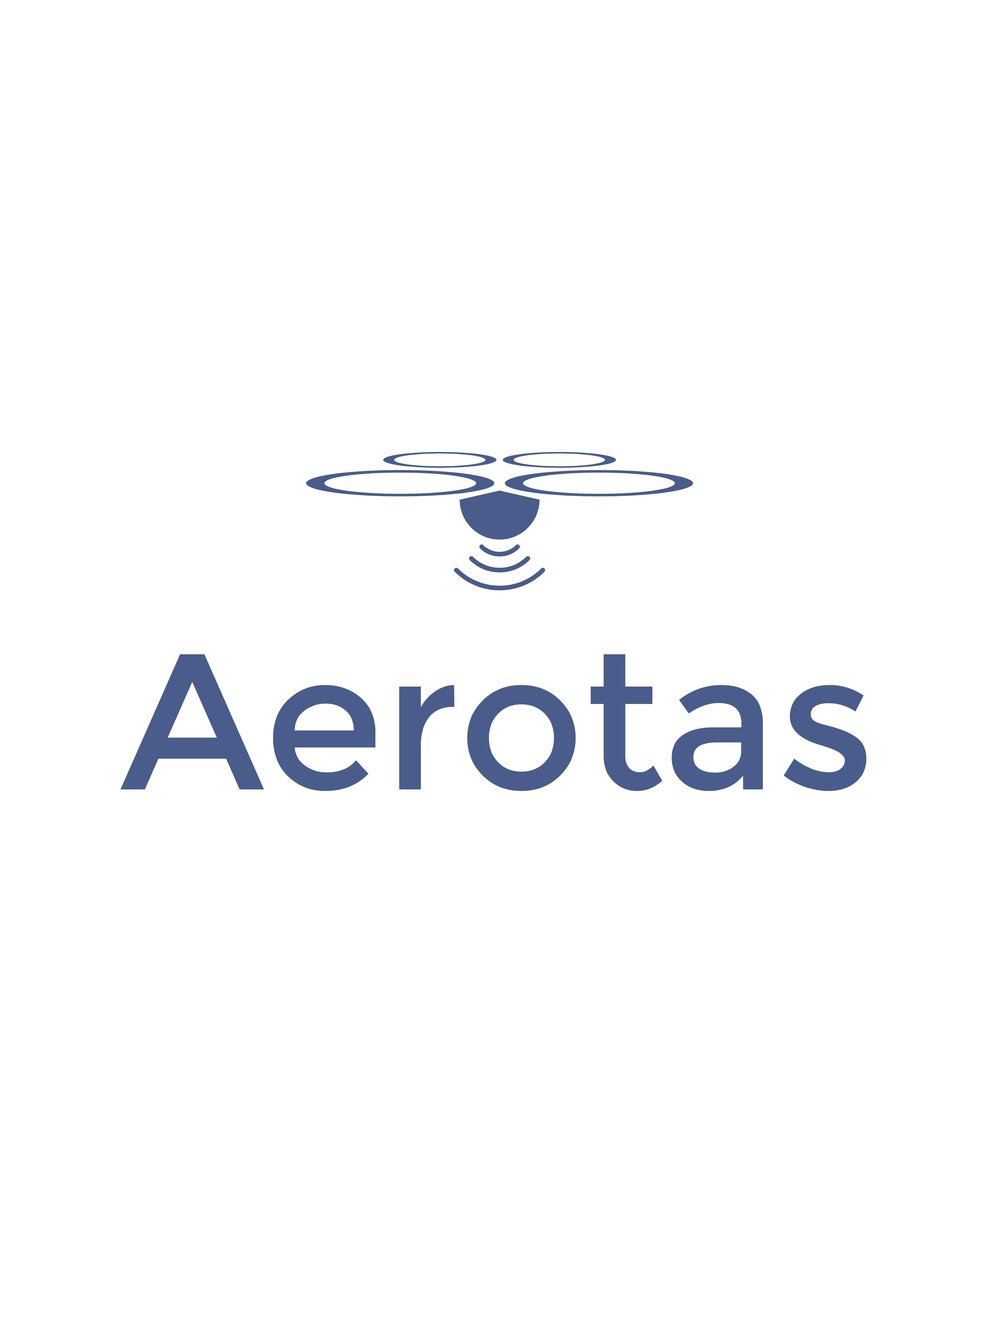 Aerotas 1 (Blue White Background).jpg